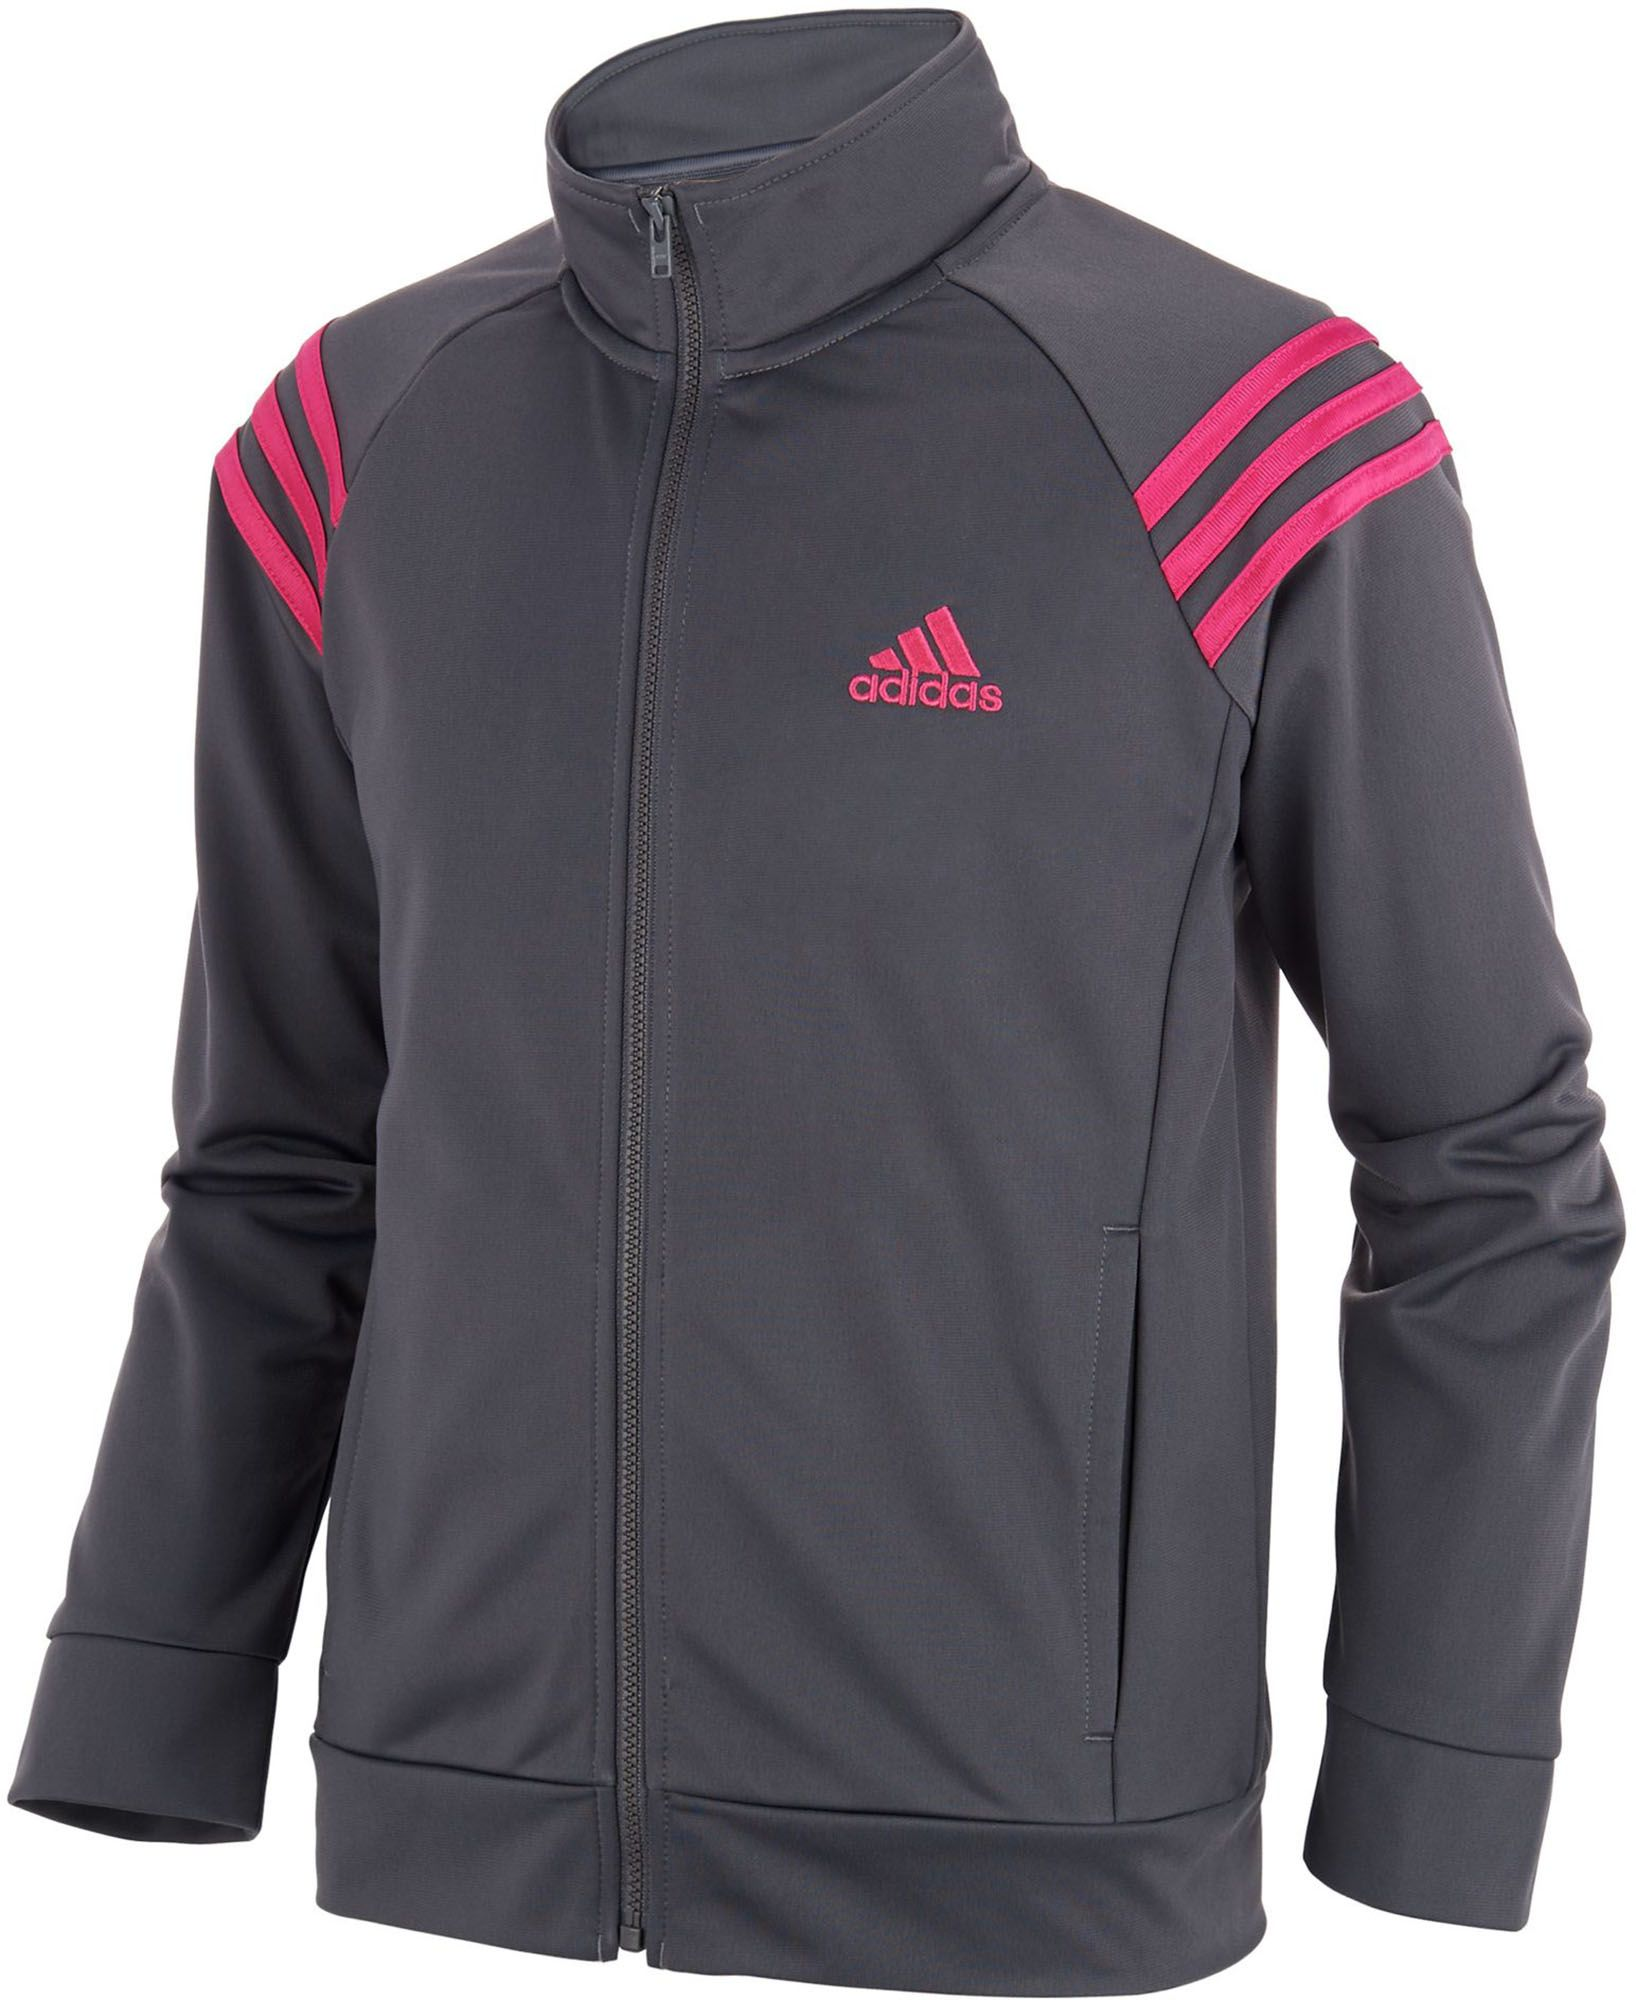 adidas Girls' Event Jacket, Size: Large, Black | Products in